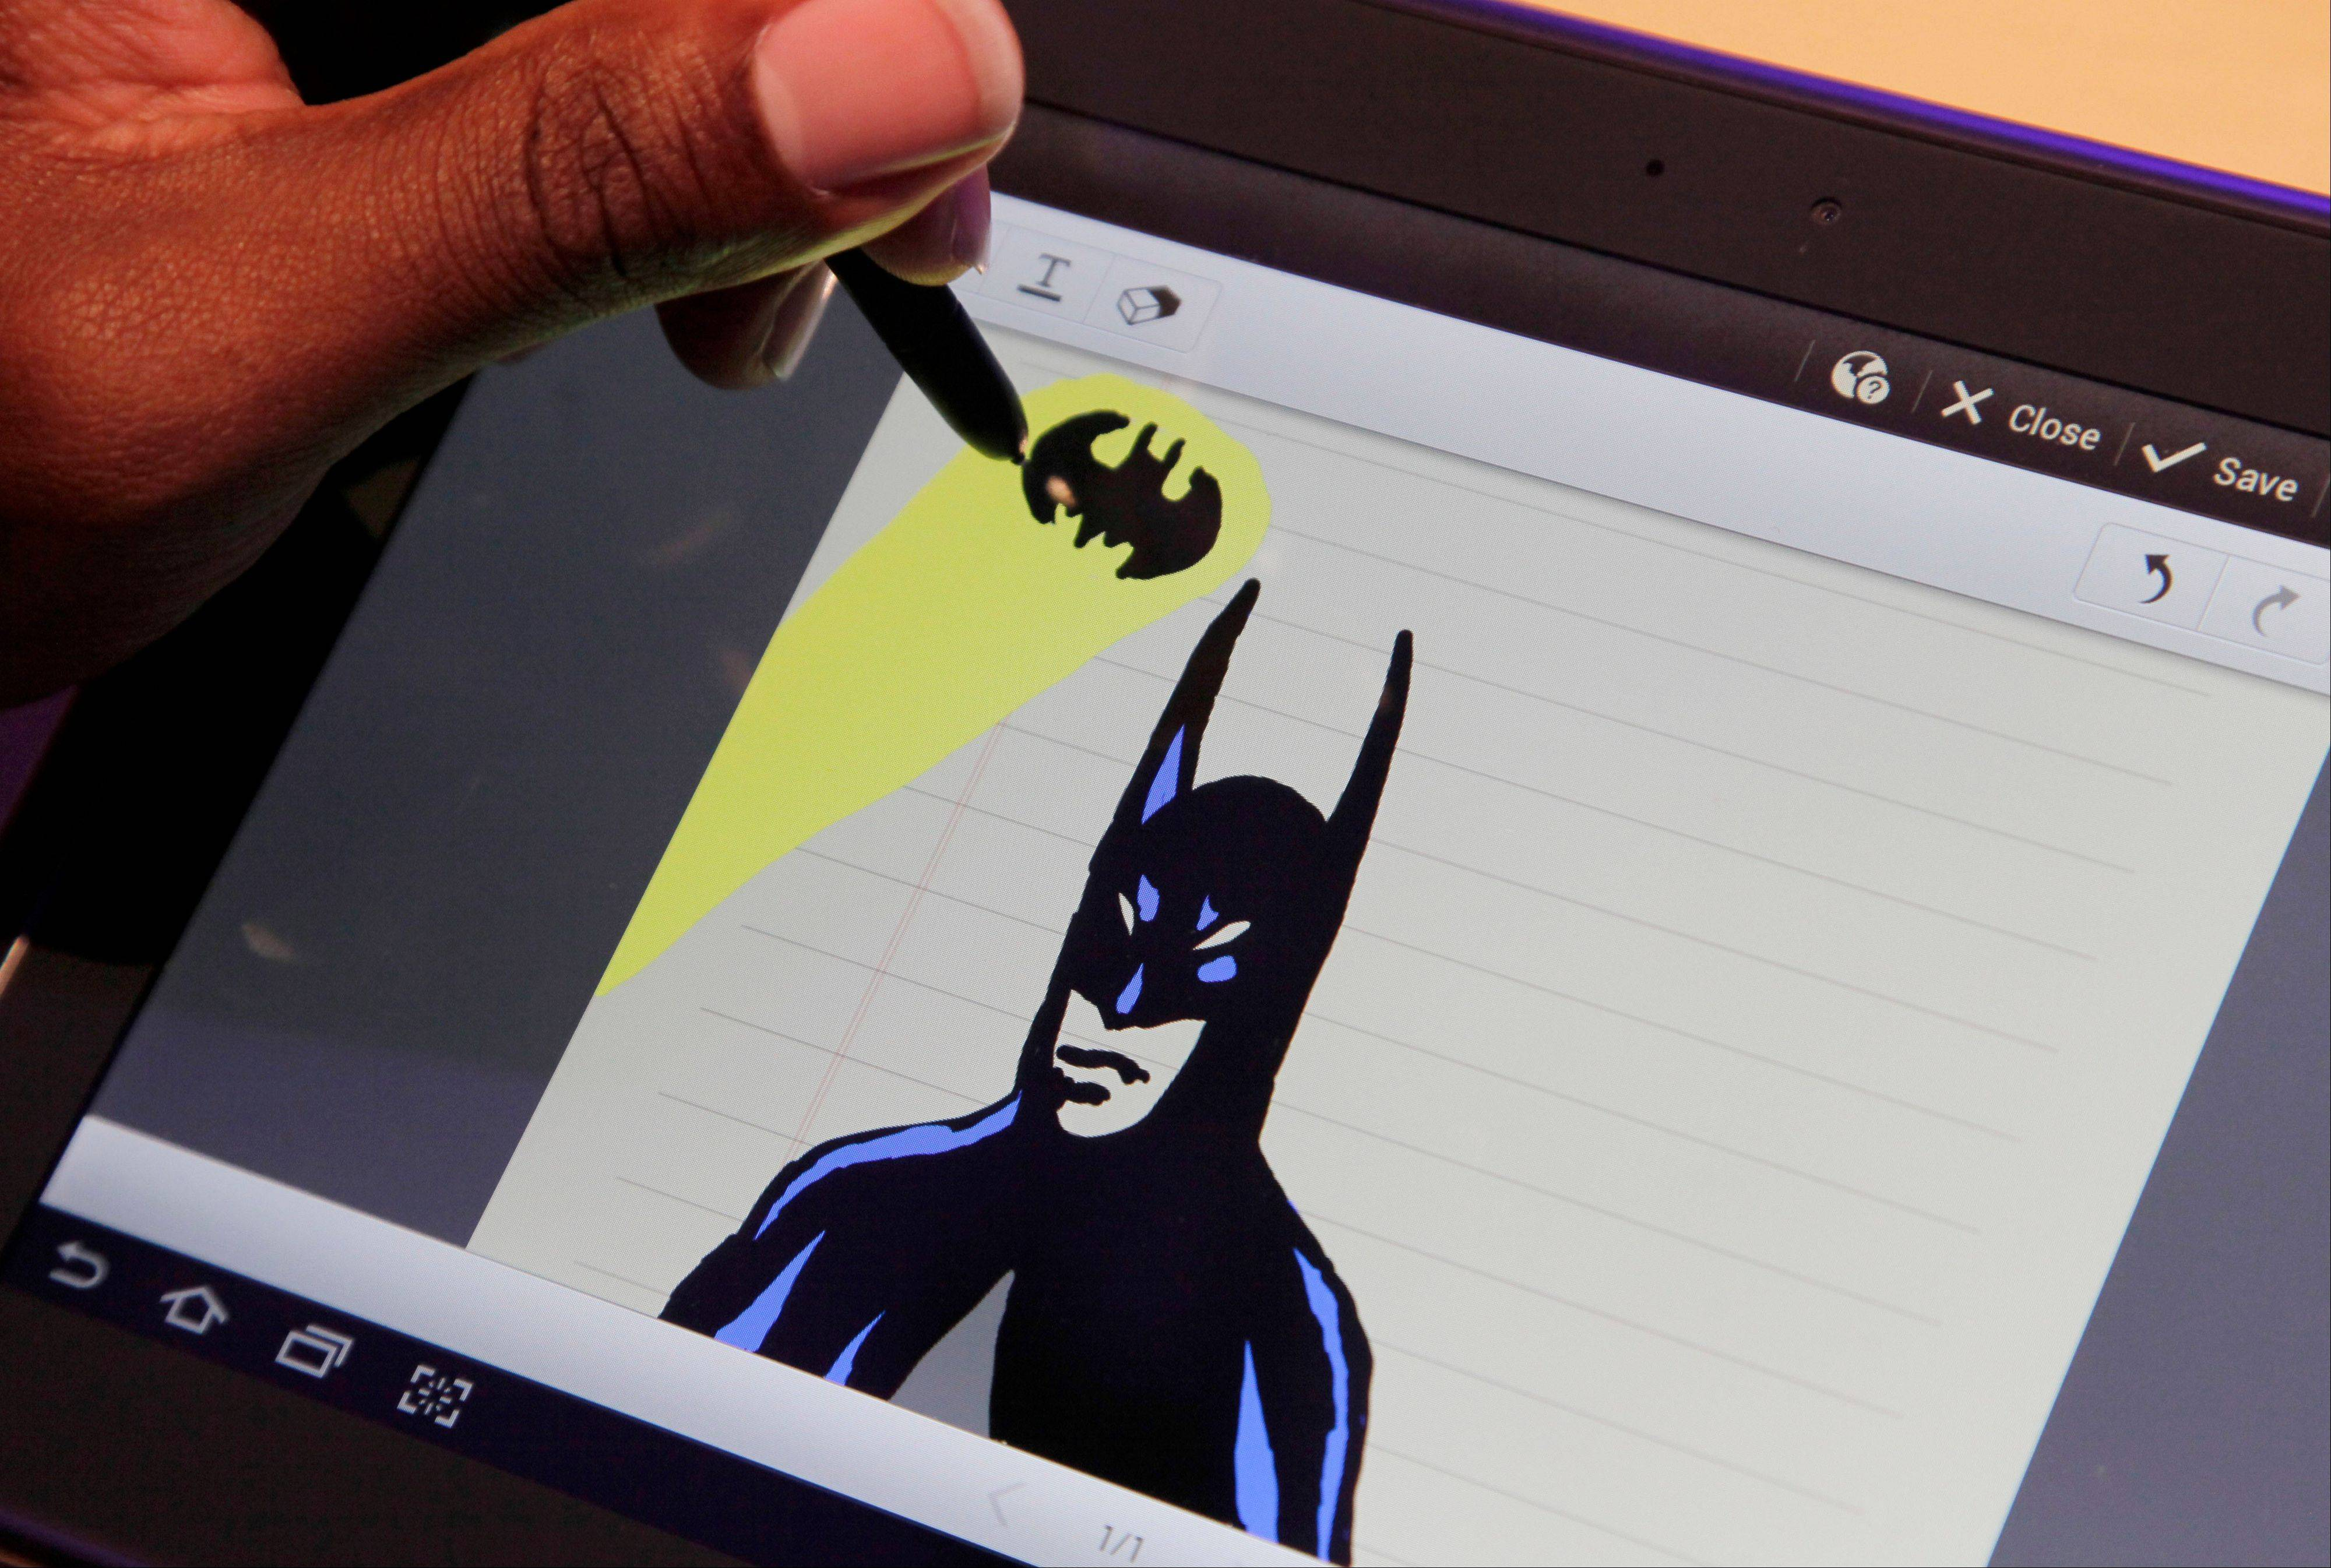 An artist uses the Samsung Galaxy Note to draw a Batman figure Wednesday at a news conference in New York.